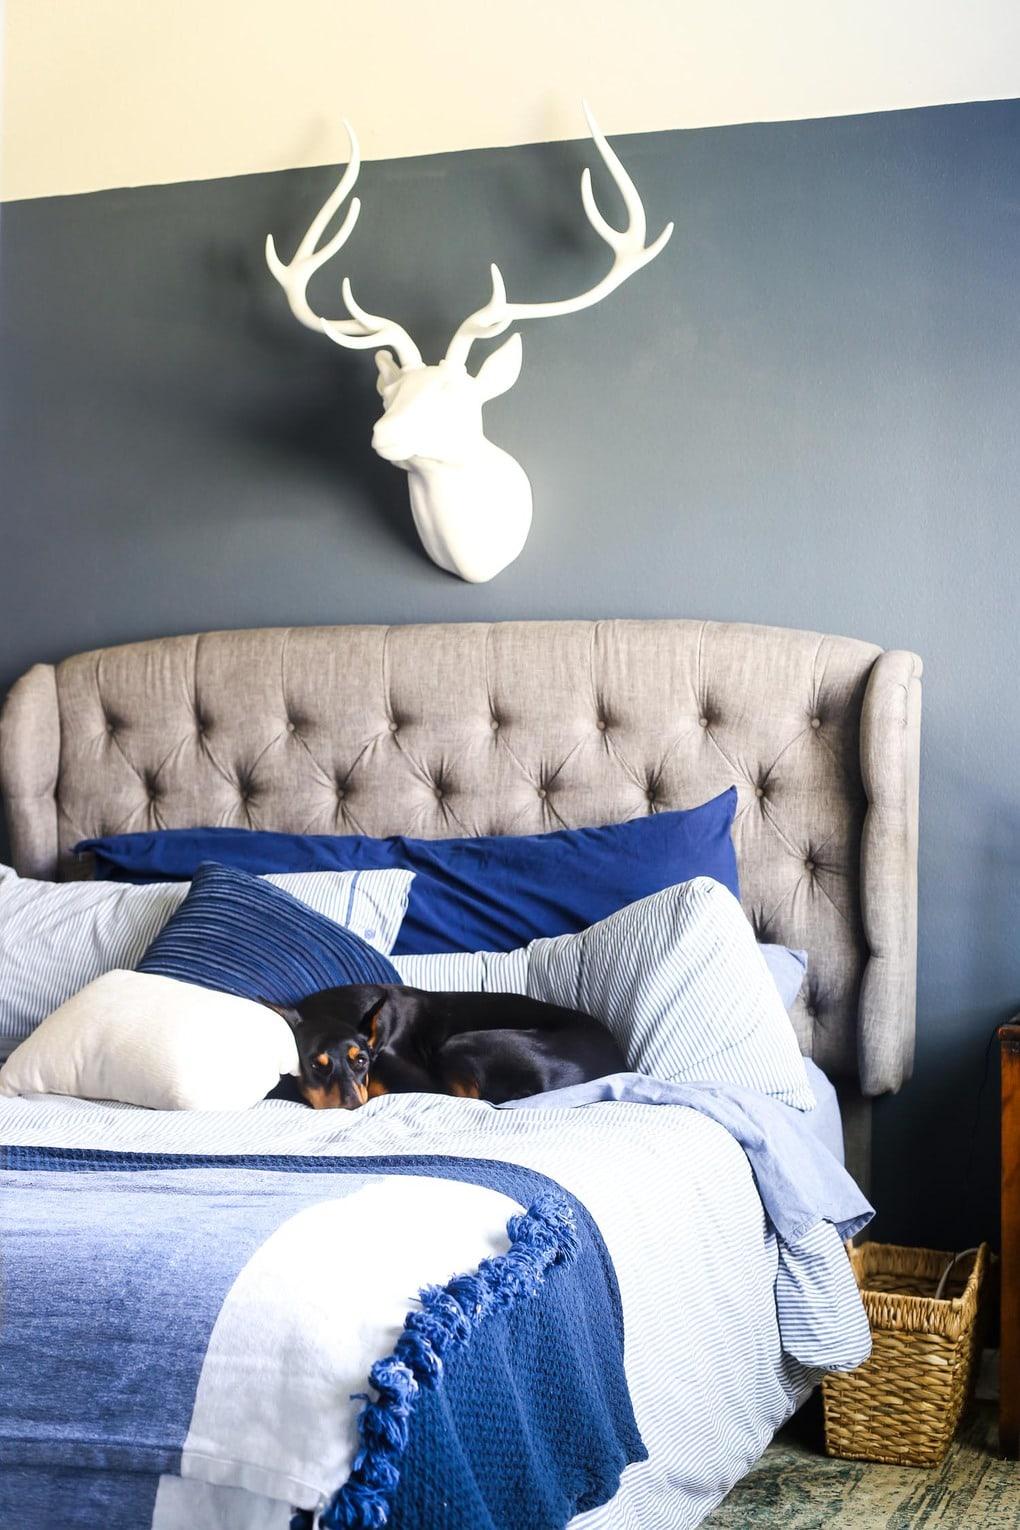 Master bedroom tour - gorgeous and cozy bed